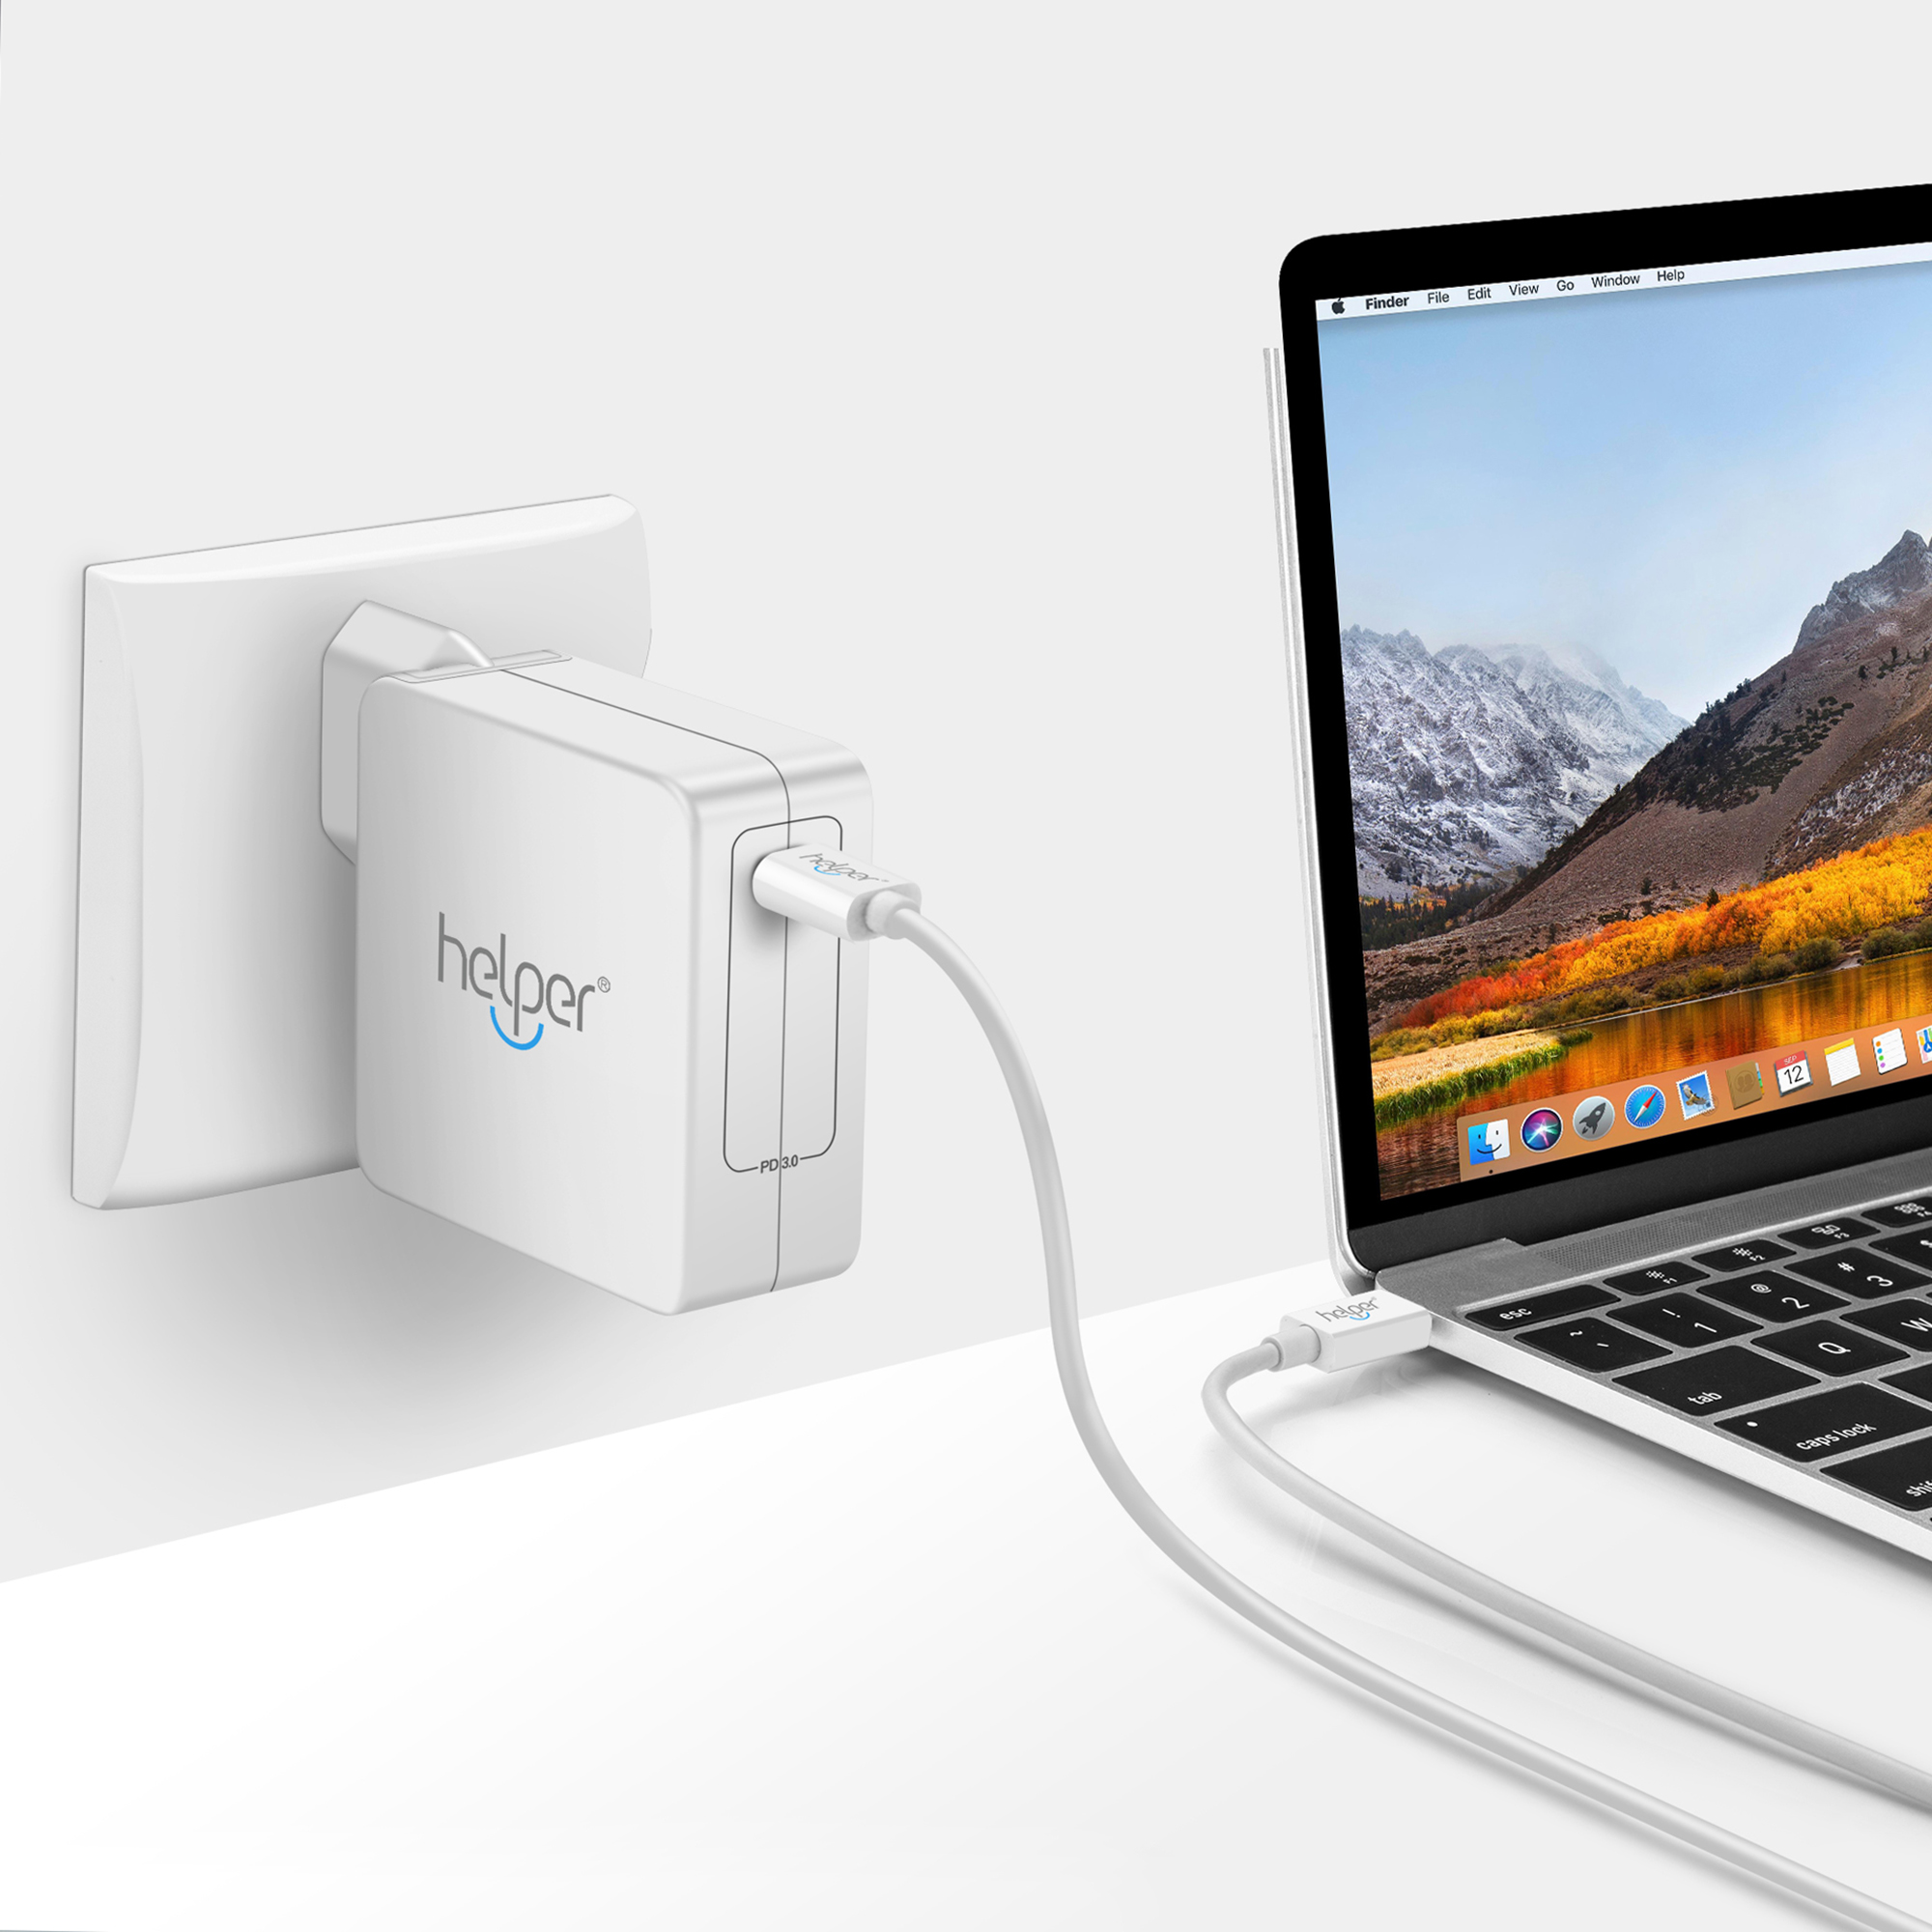 US $28 49 5% OFF|USB Type C PD3 0 PPS Adapter Charger for MacBook/Pro,  Thinkpad X1 Dell XPS Latitude Xiao Mi Matebook and more USB C devices-in  Laptop